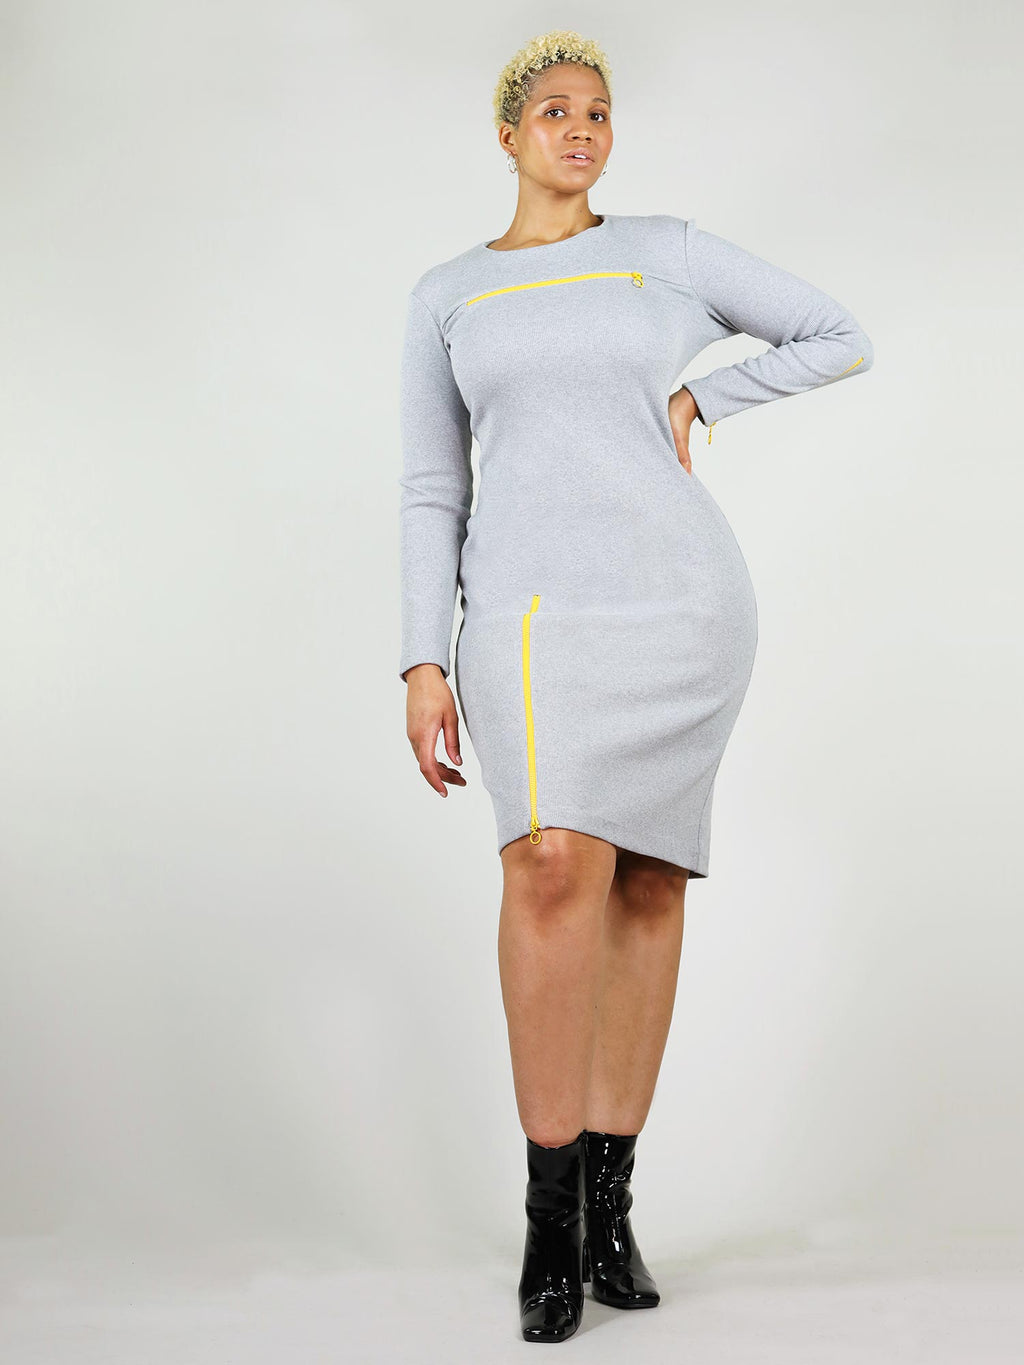 The wicked zip dress is grey has tight body con fit and under knee length. It has bright neon yellow zippers, one on the right leg and one under the collar bone area that can both unzip.